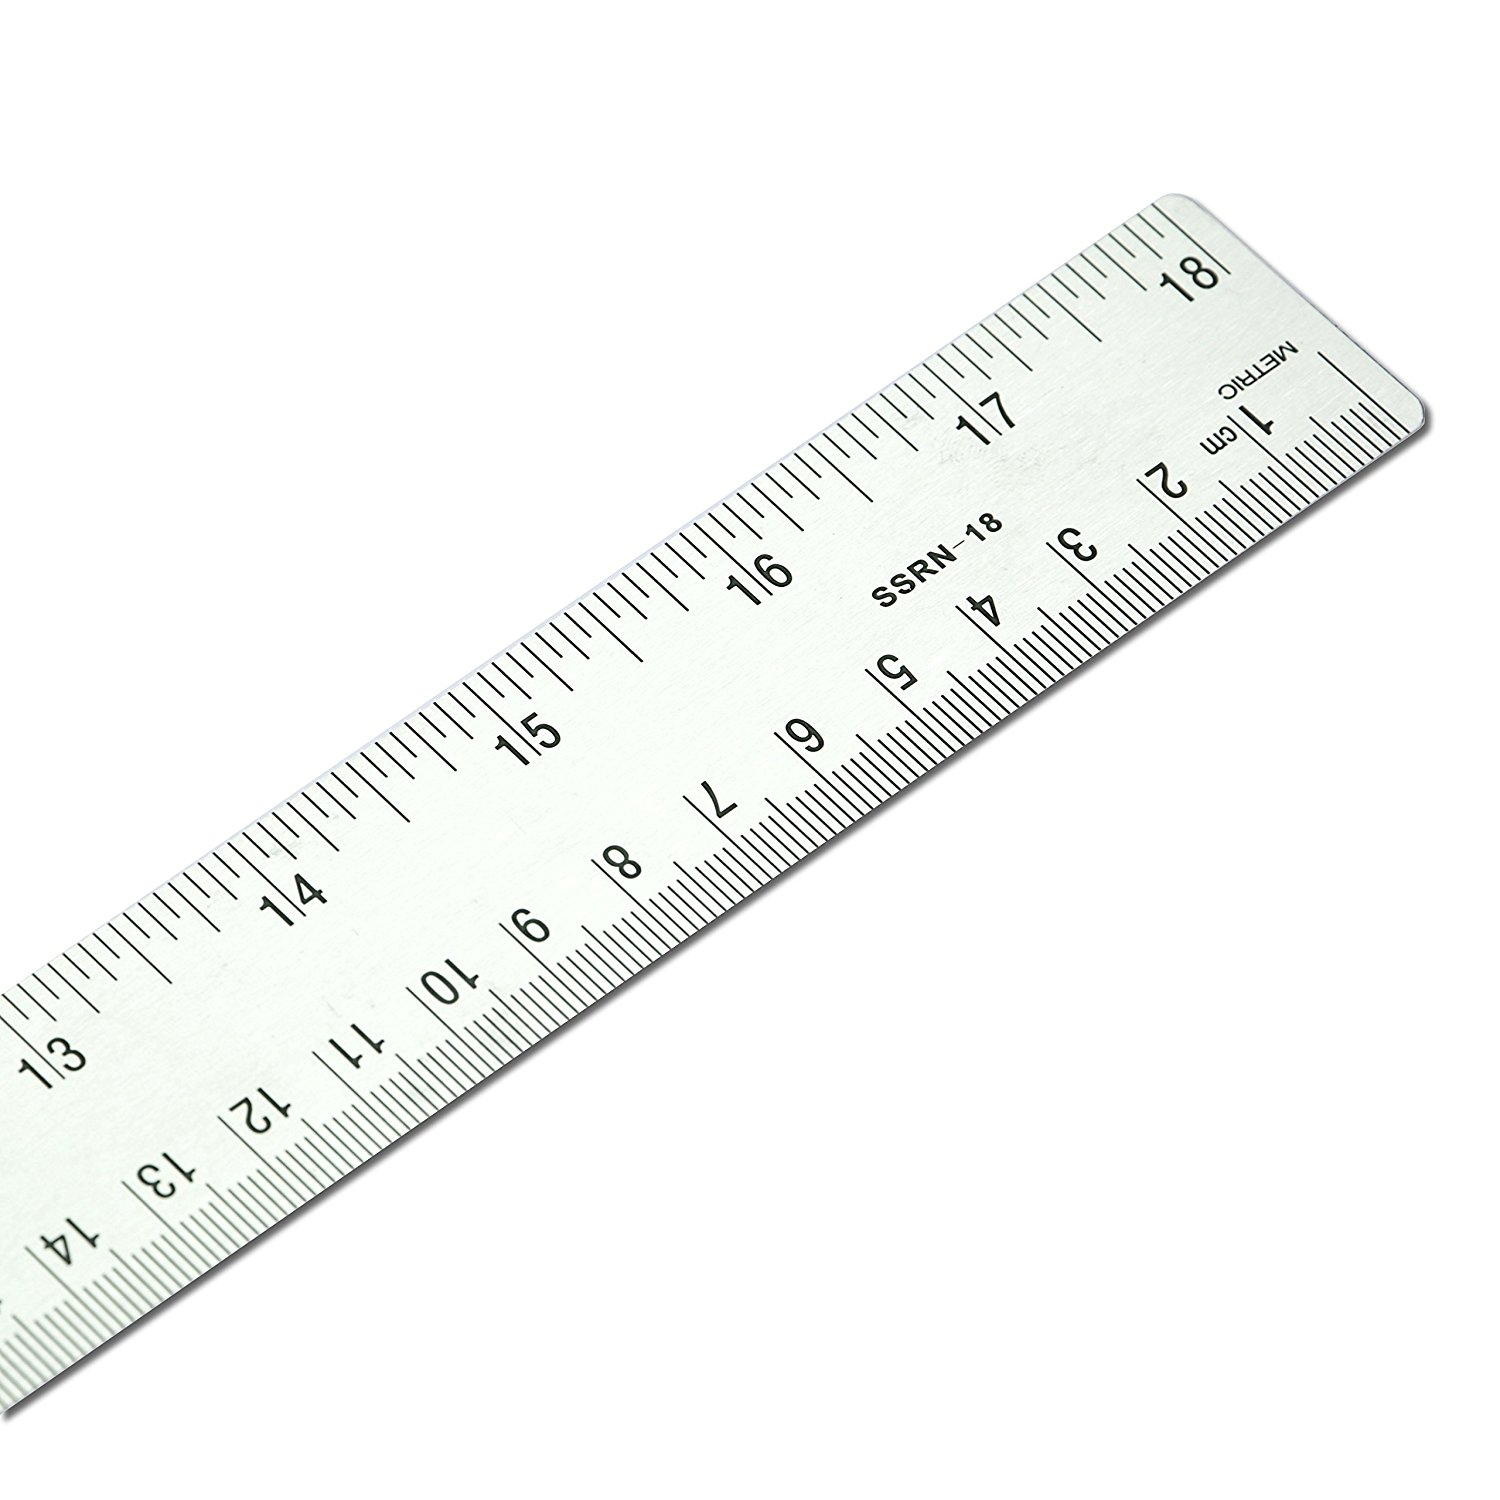 1500x1500 Vinca Ssrn 18 Stainless Steel Office Drawing Ruler 0